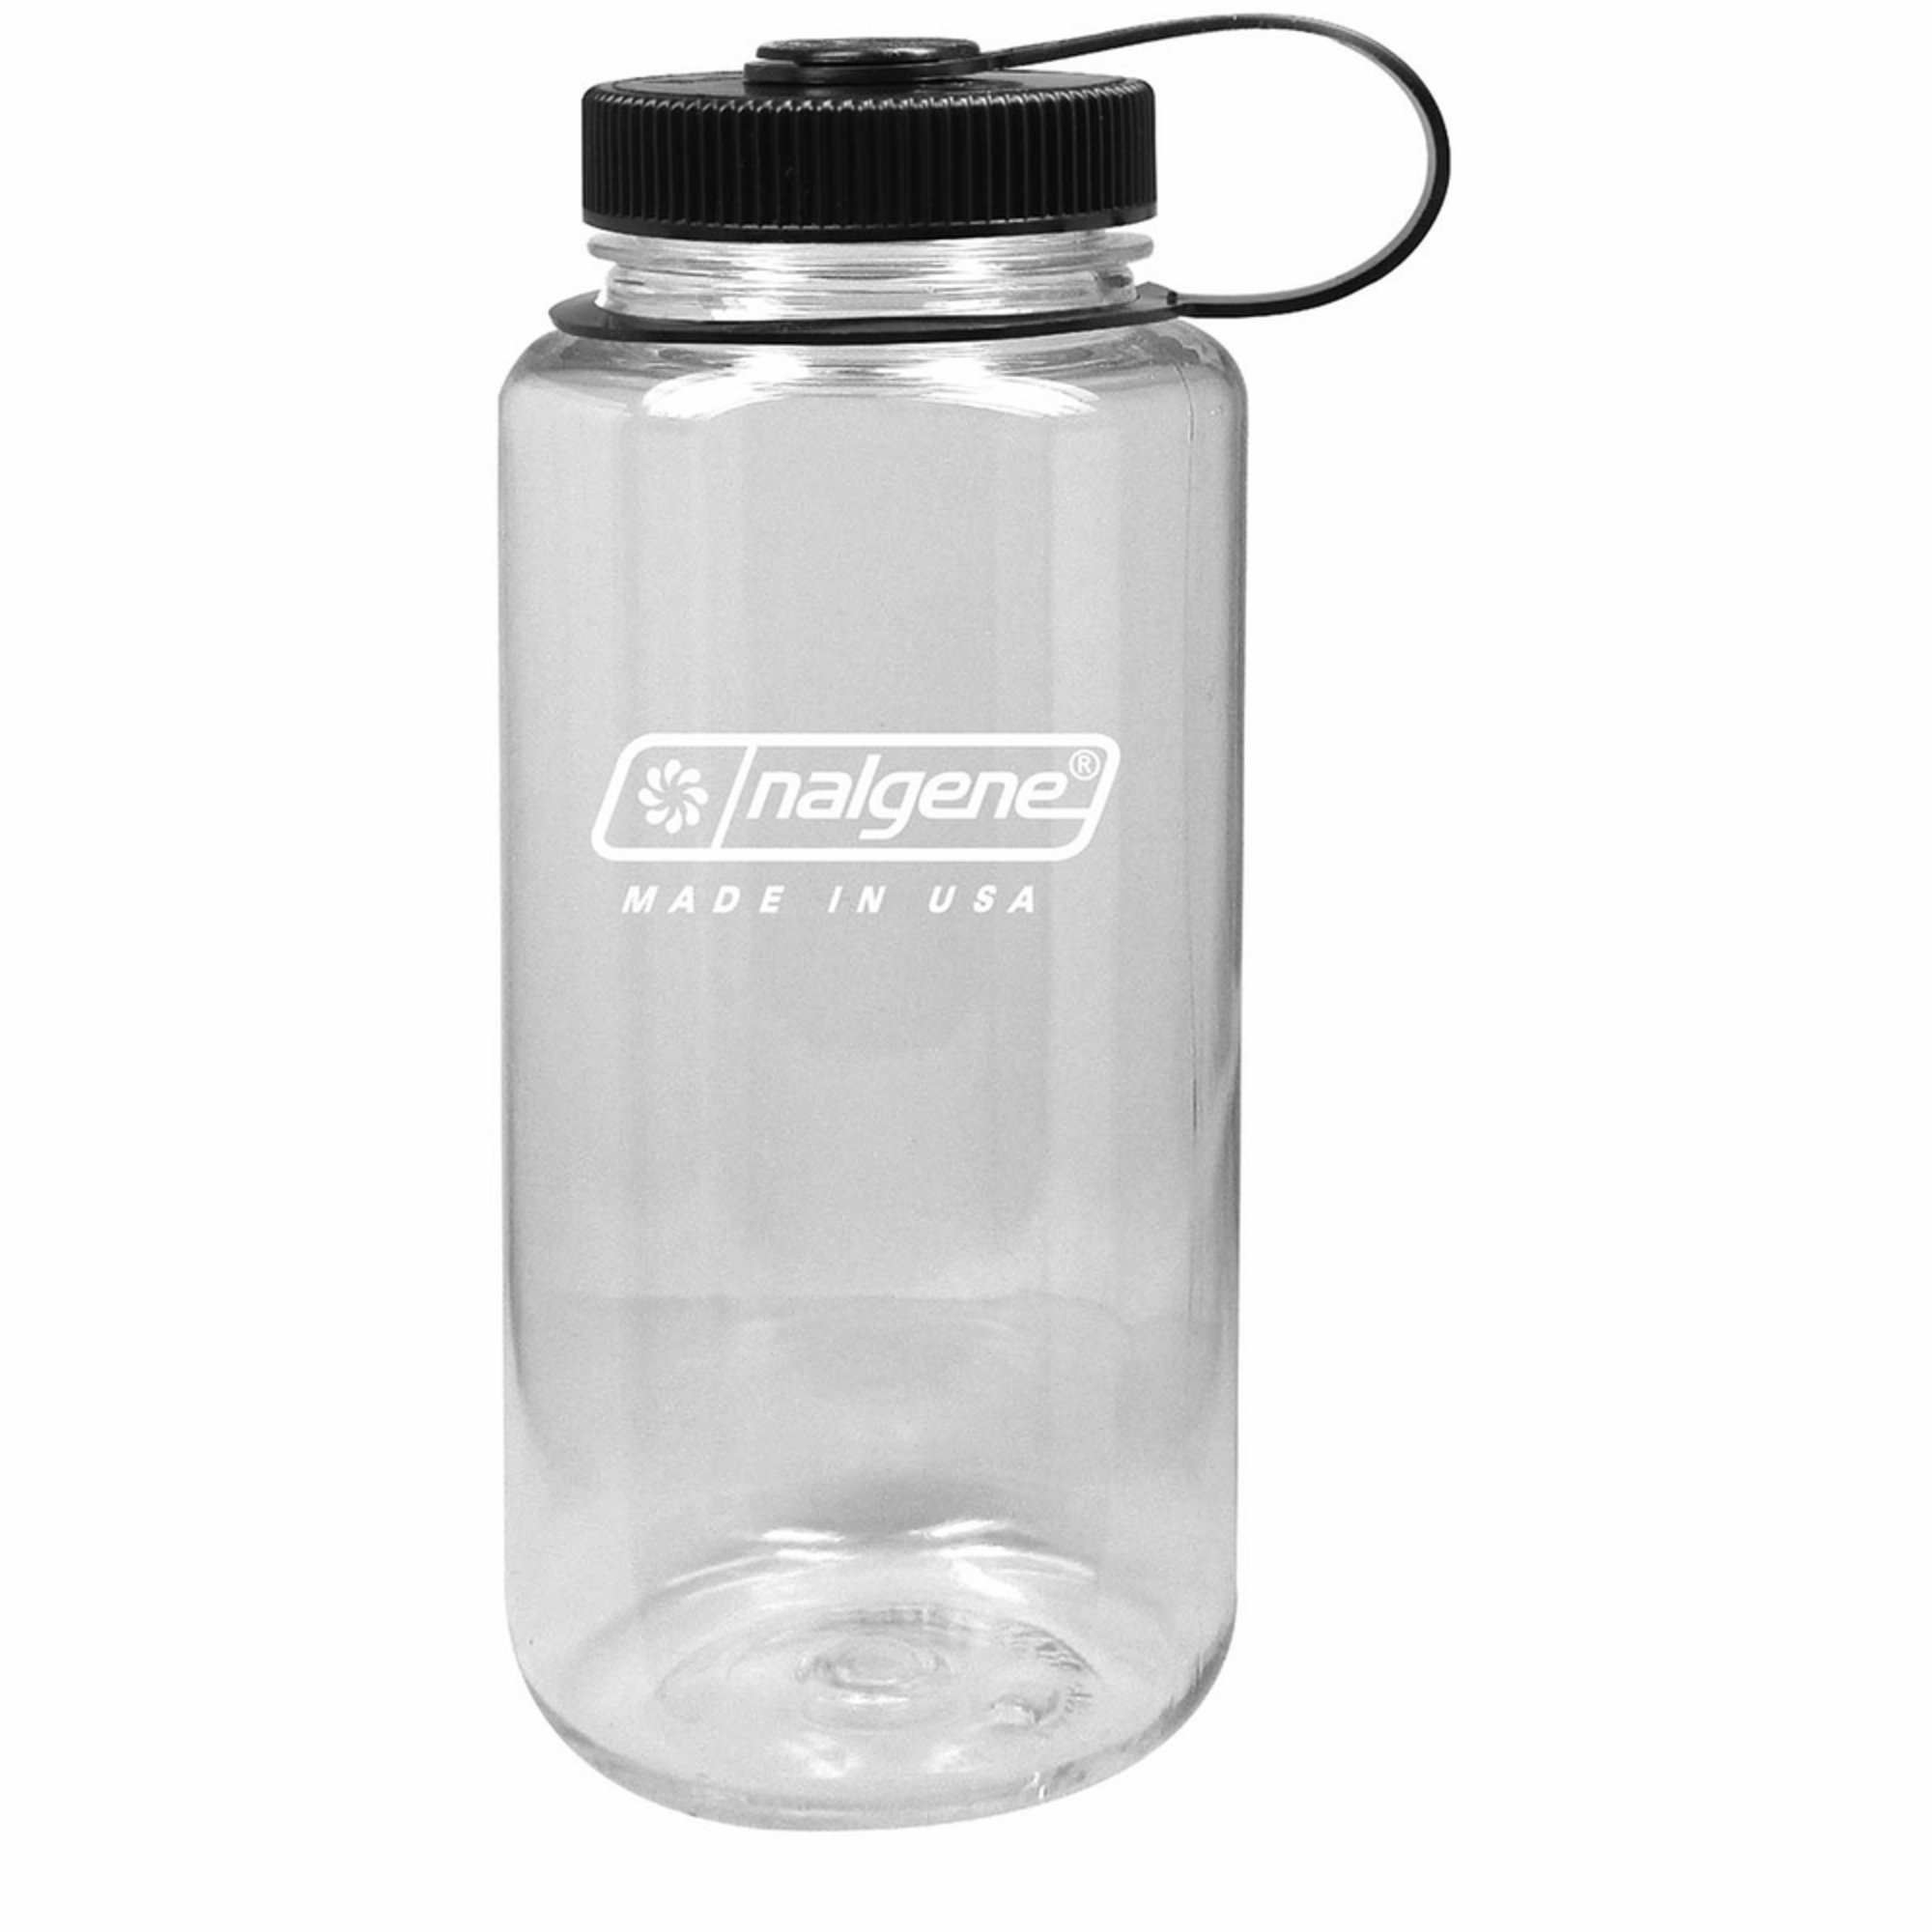 Nalgene 32 Oz. Tritan Wide Mouth Bpa-free Water Bottle - Clear black ... f922d6d3e358